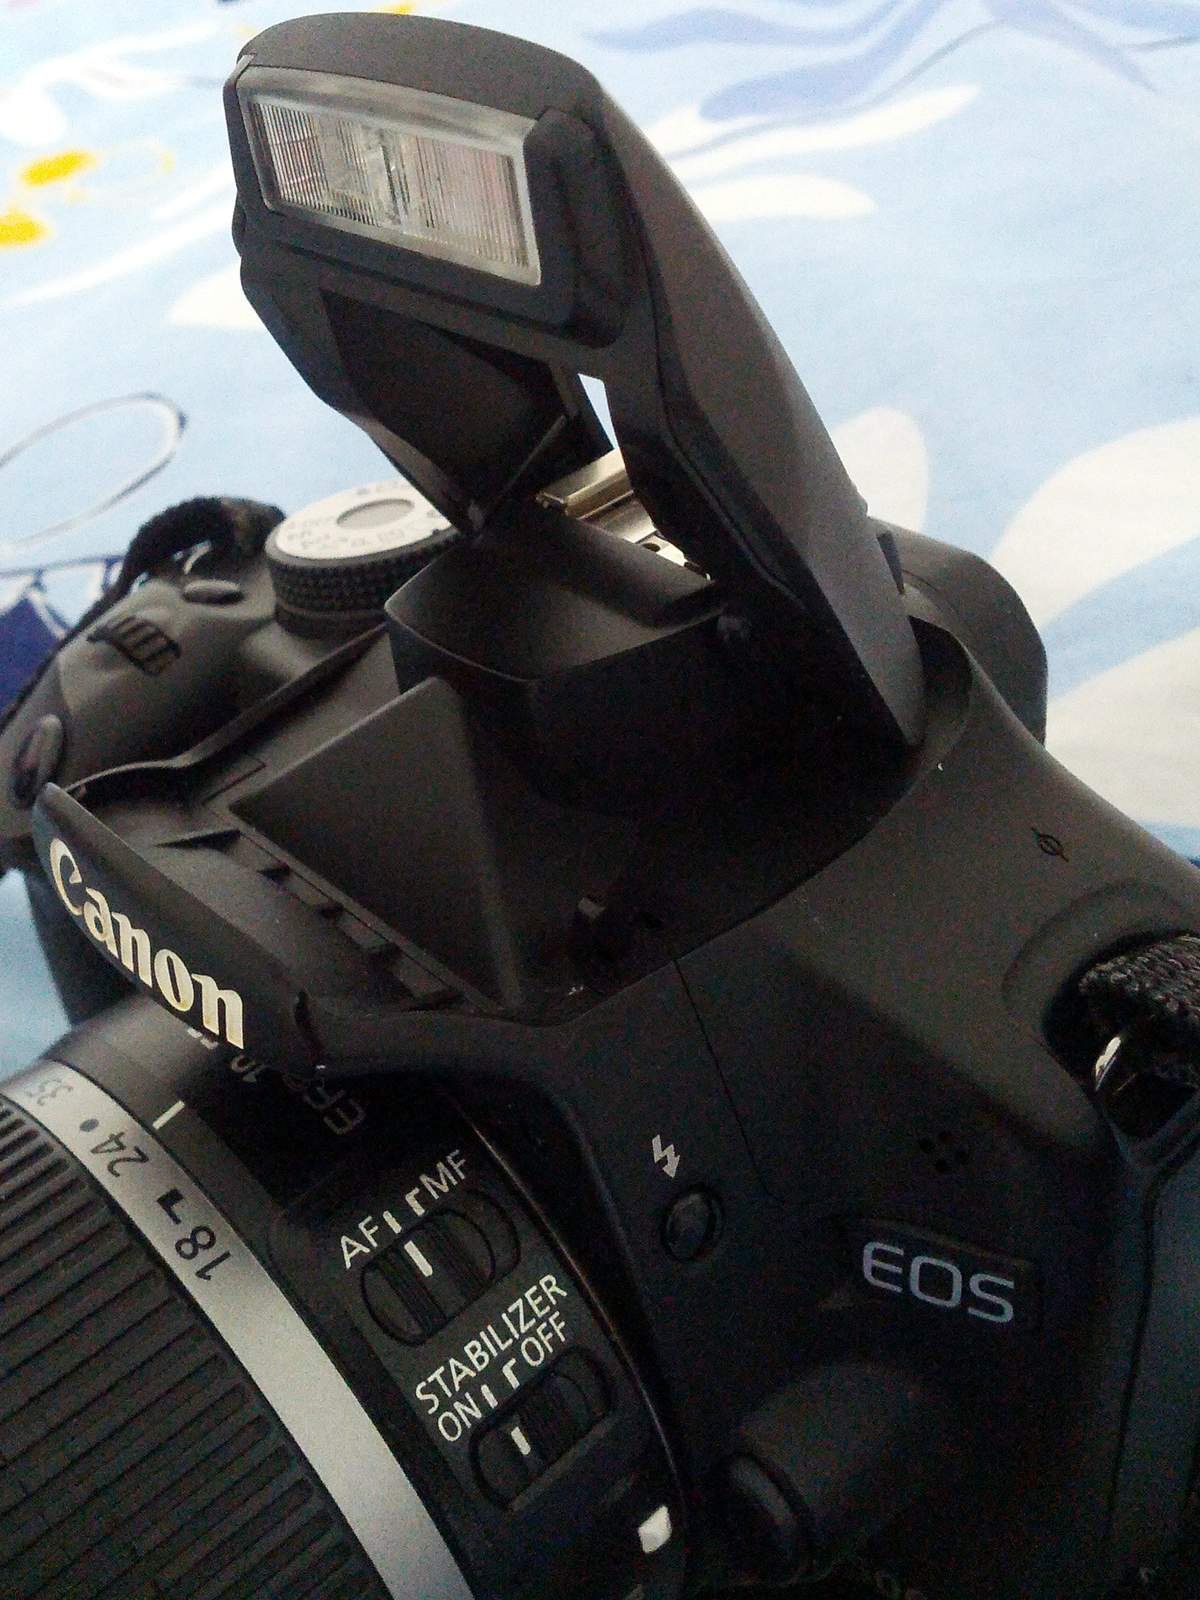 How to fix the popup flash on your camera (Canon DSLR) - Tutorial Geek